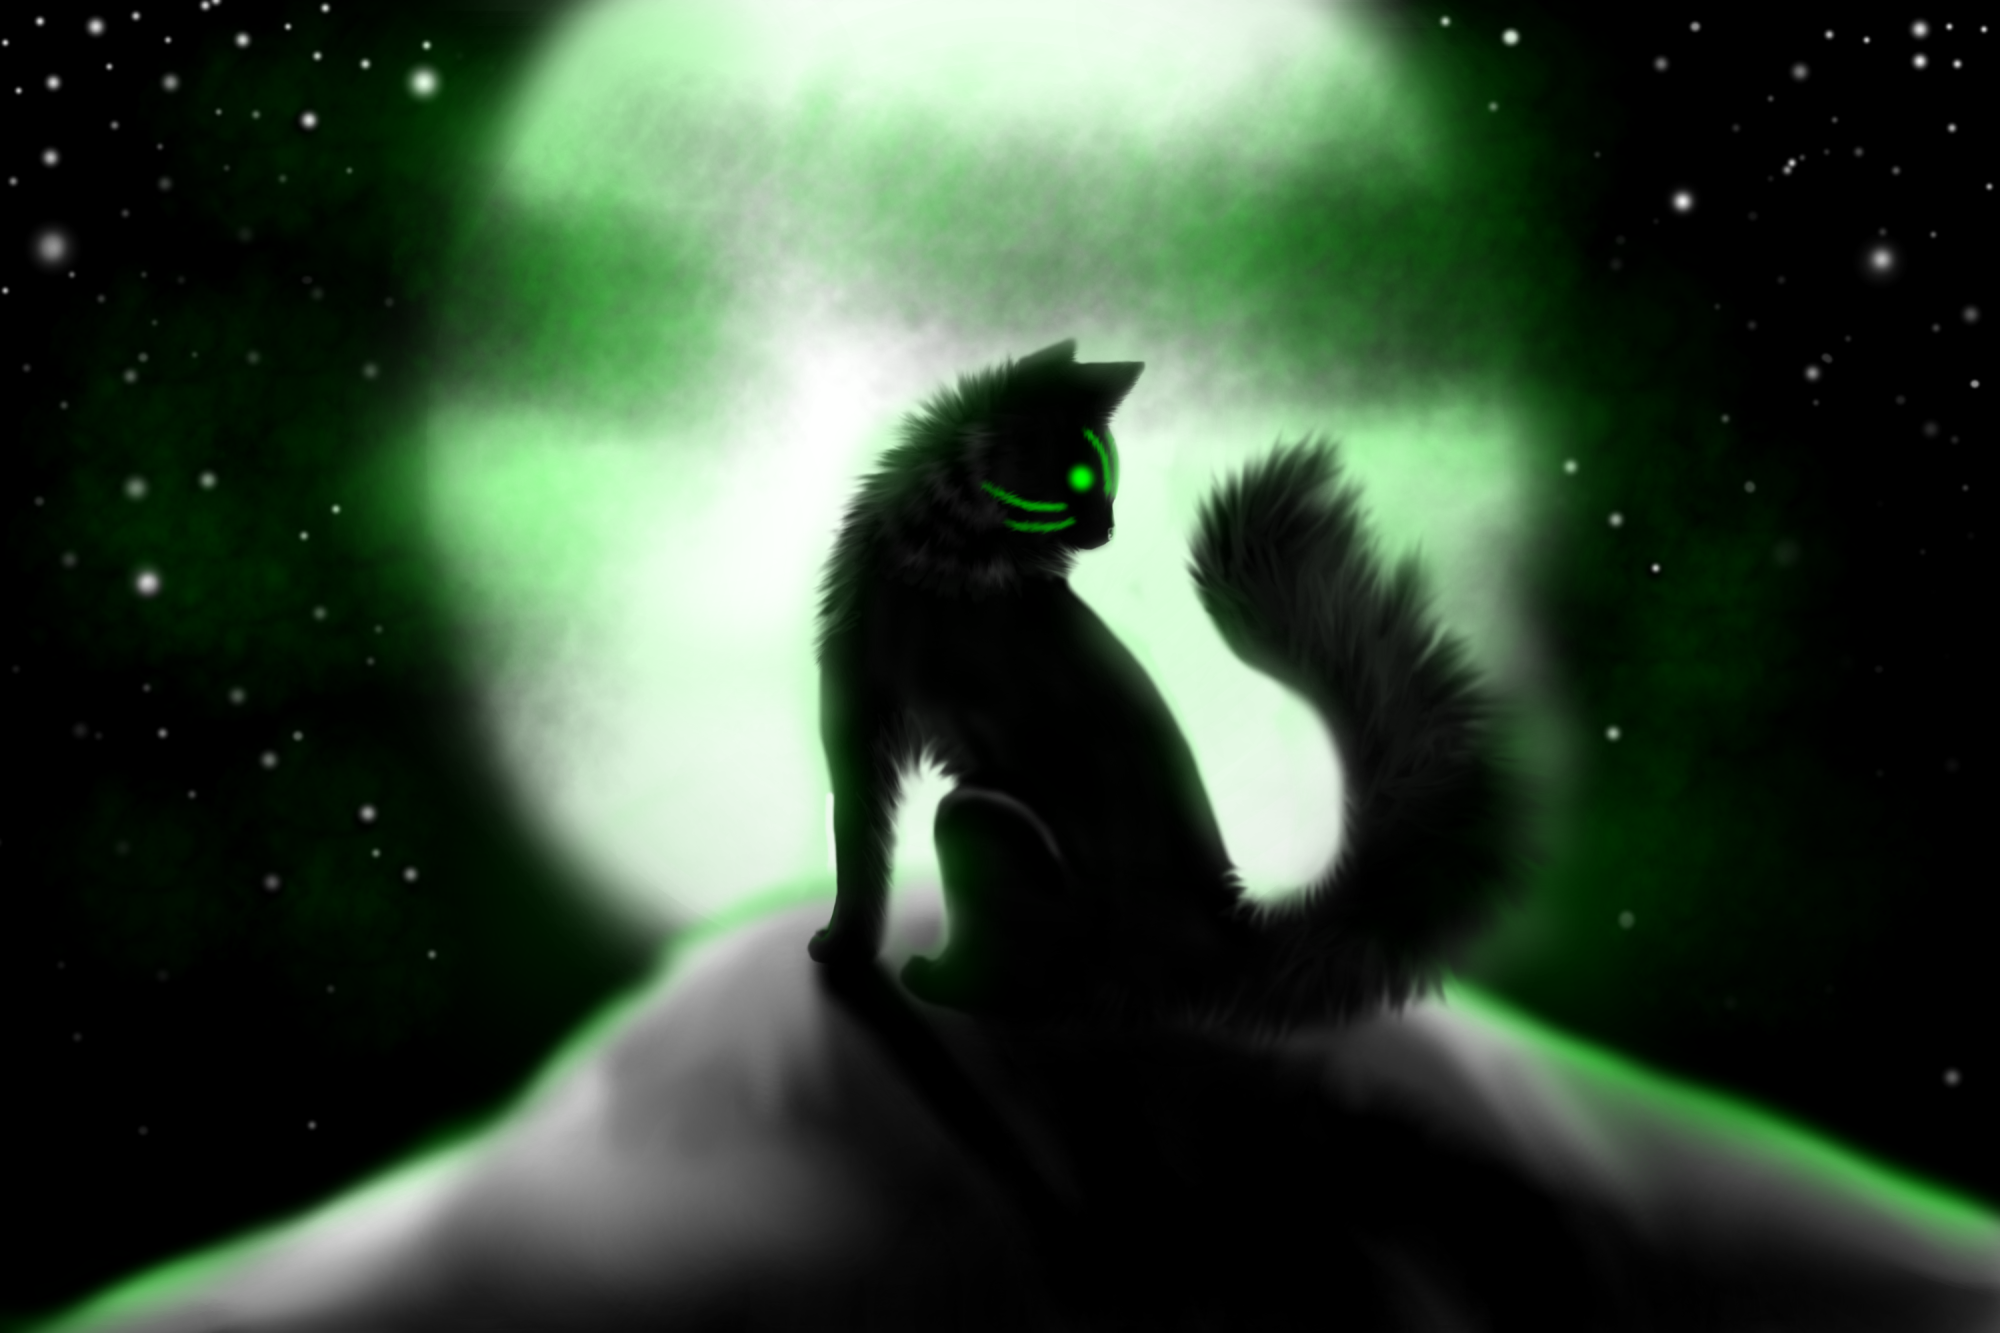 I am the shadow on the moon at night by SironaWolf